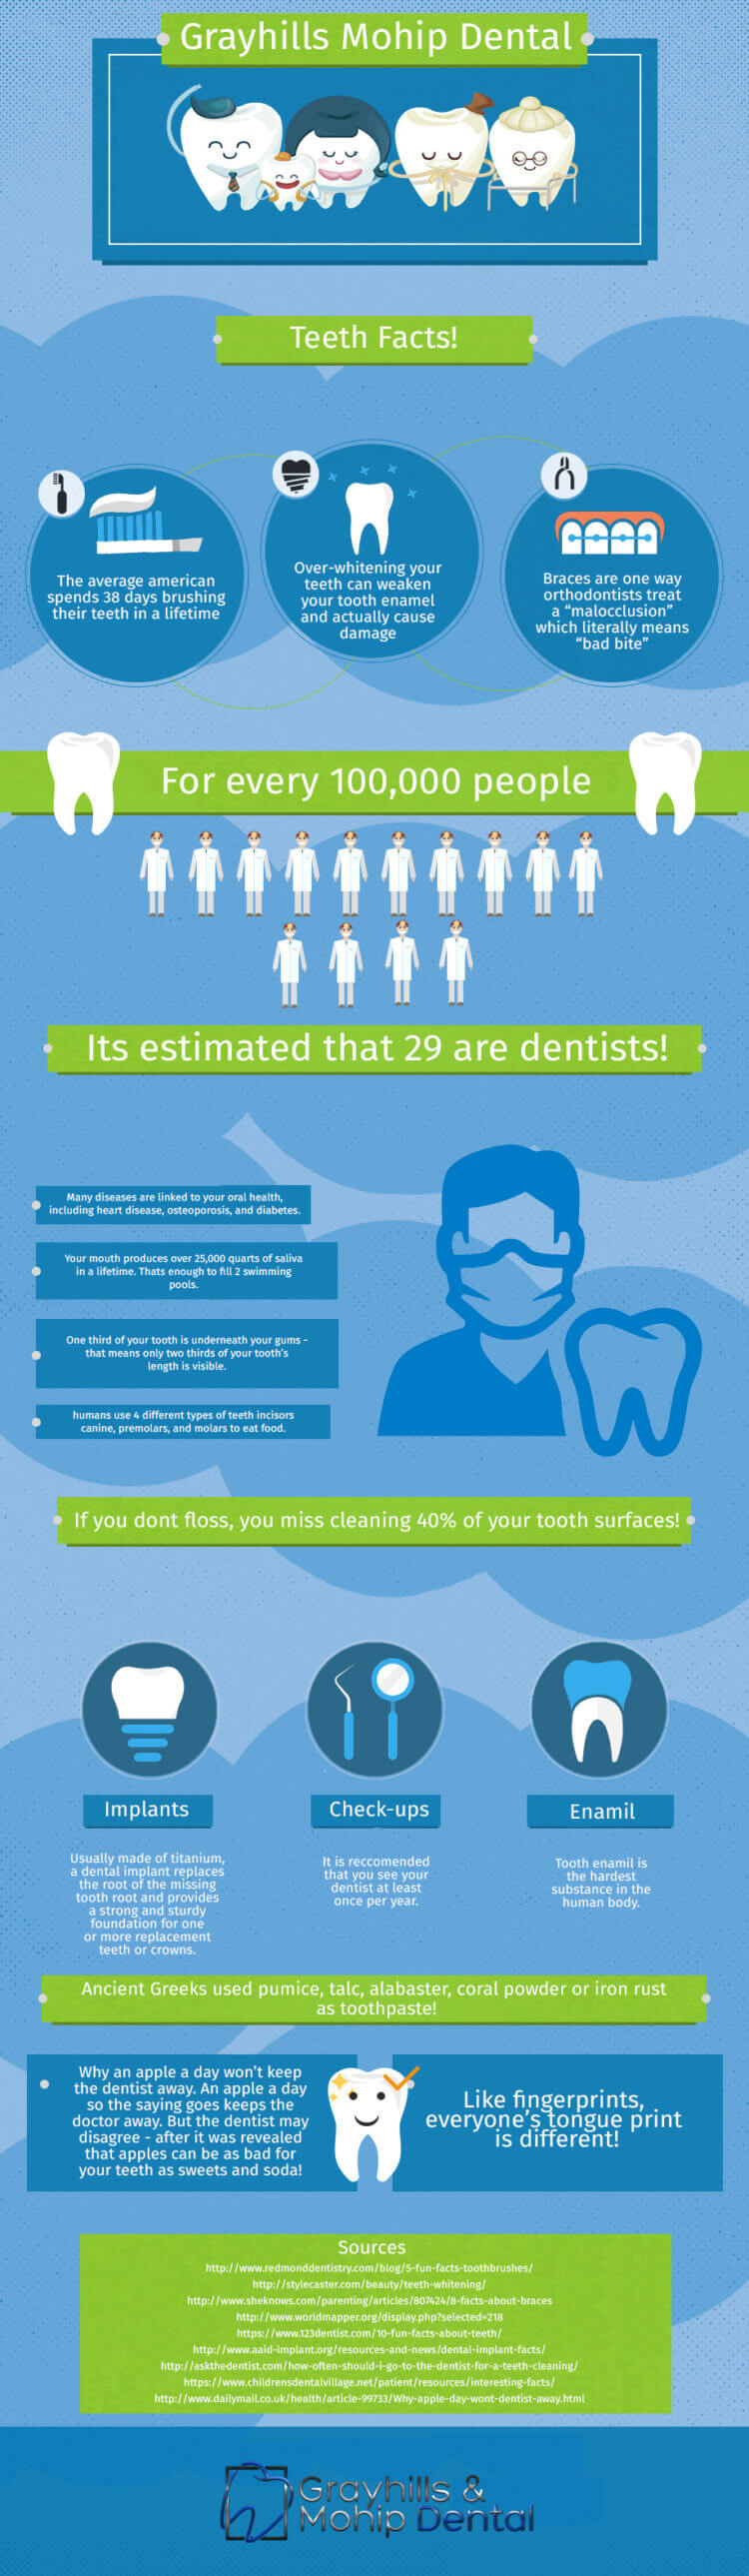 Mohip Dental & Associates Infographic